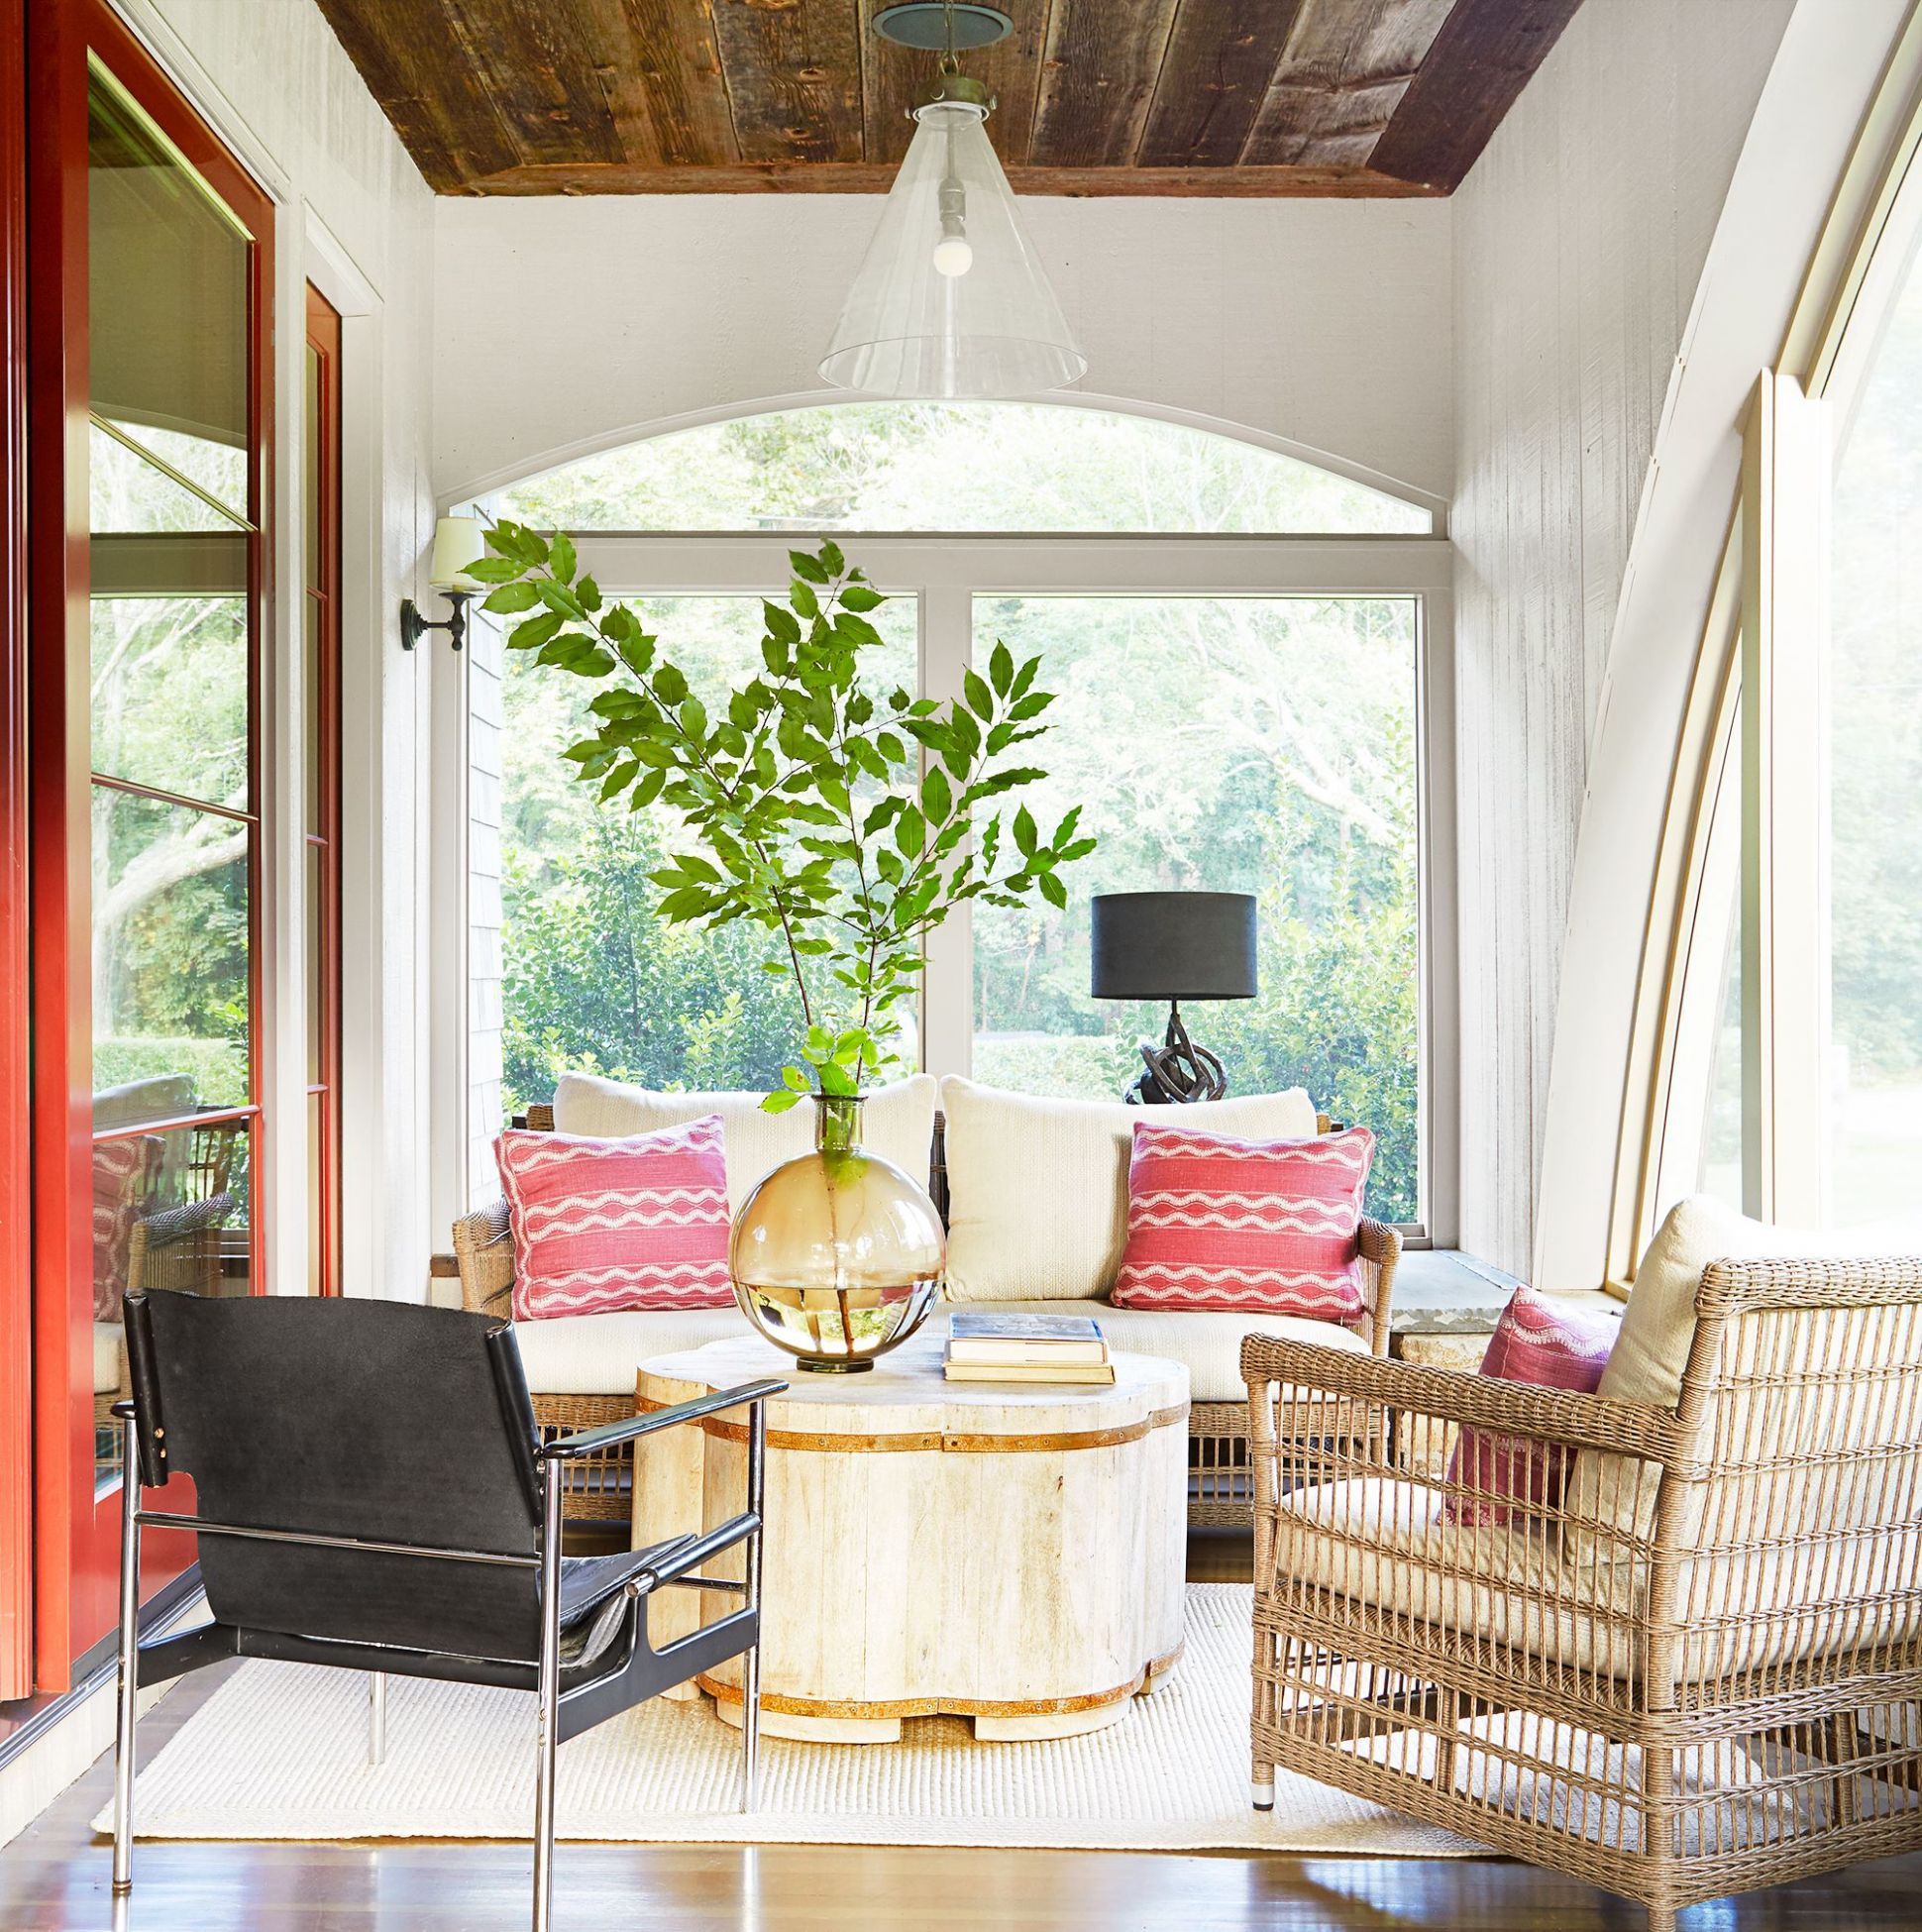 9 Pretty Sunroom Ideas - Chic Designs & Decor for Screened In Porches